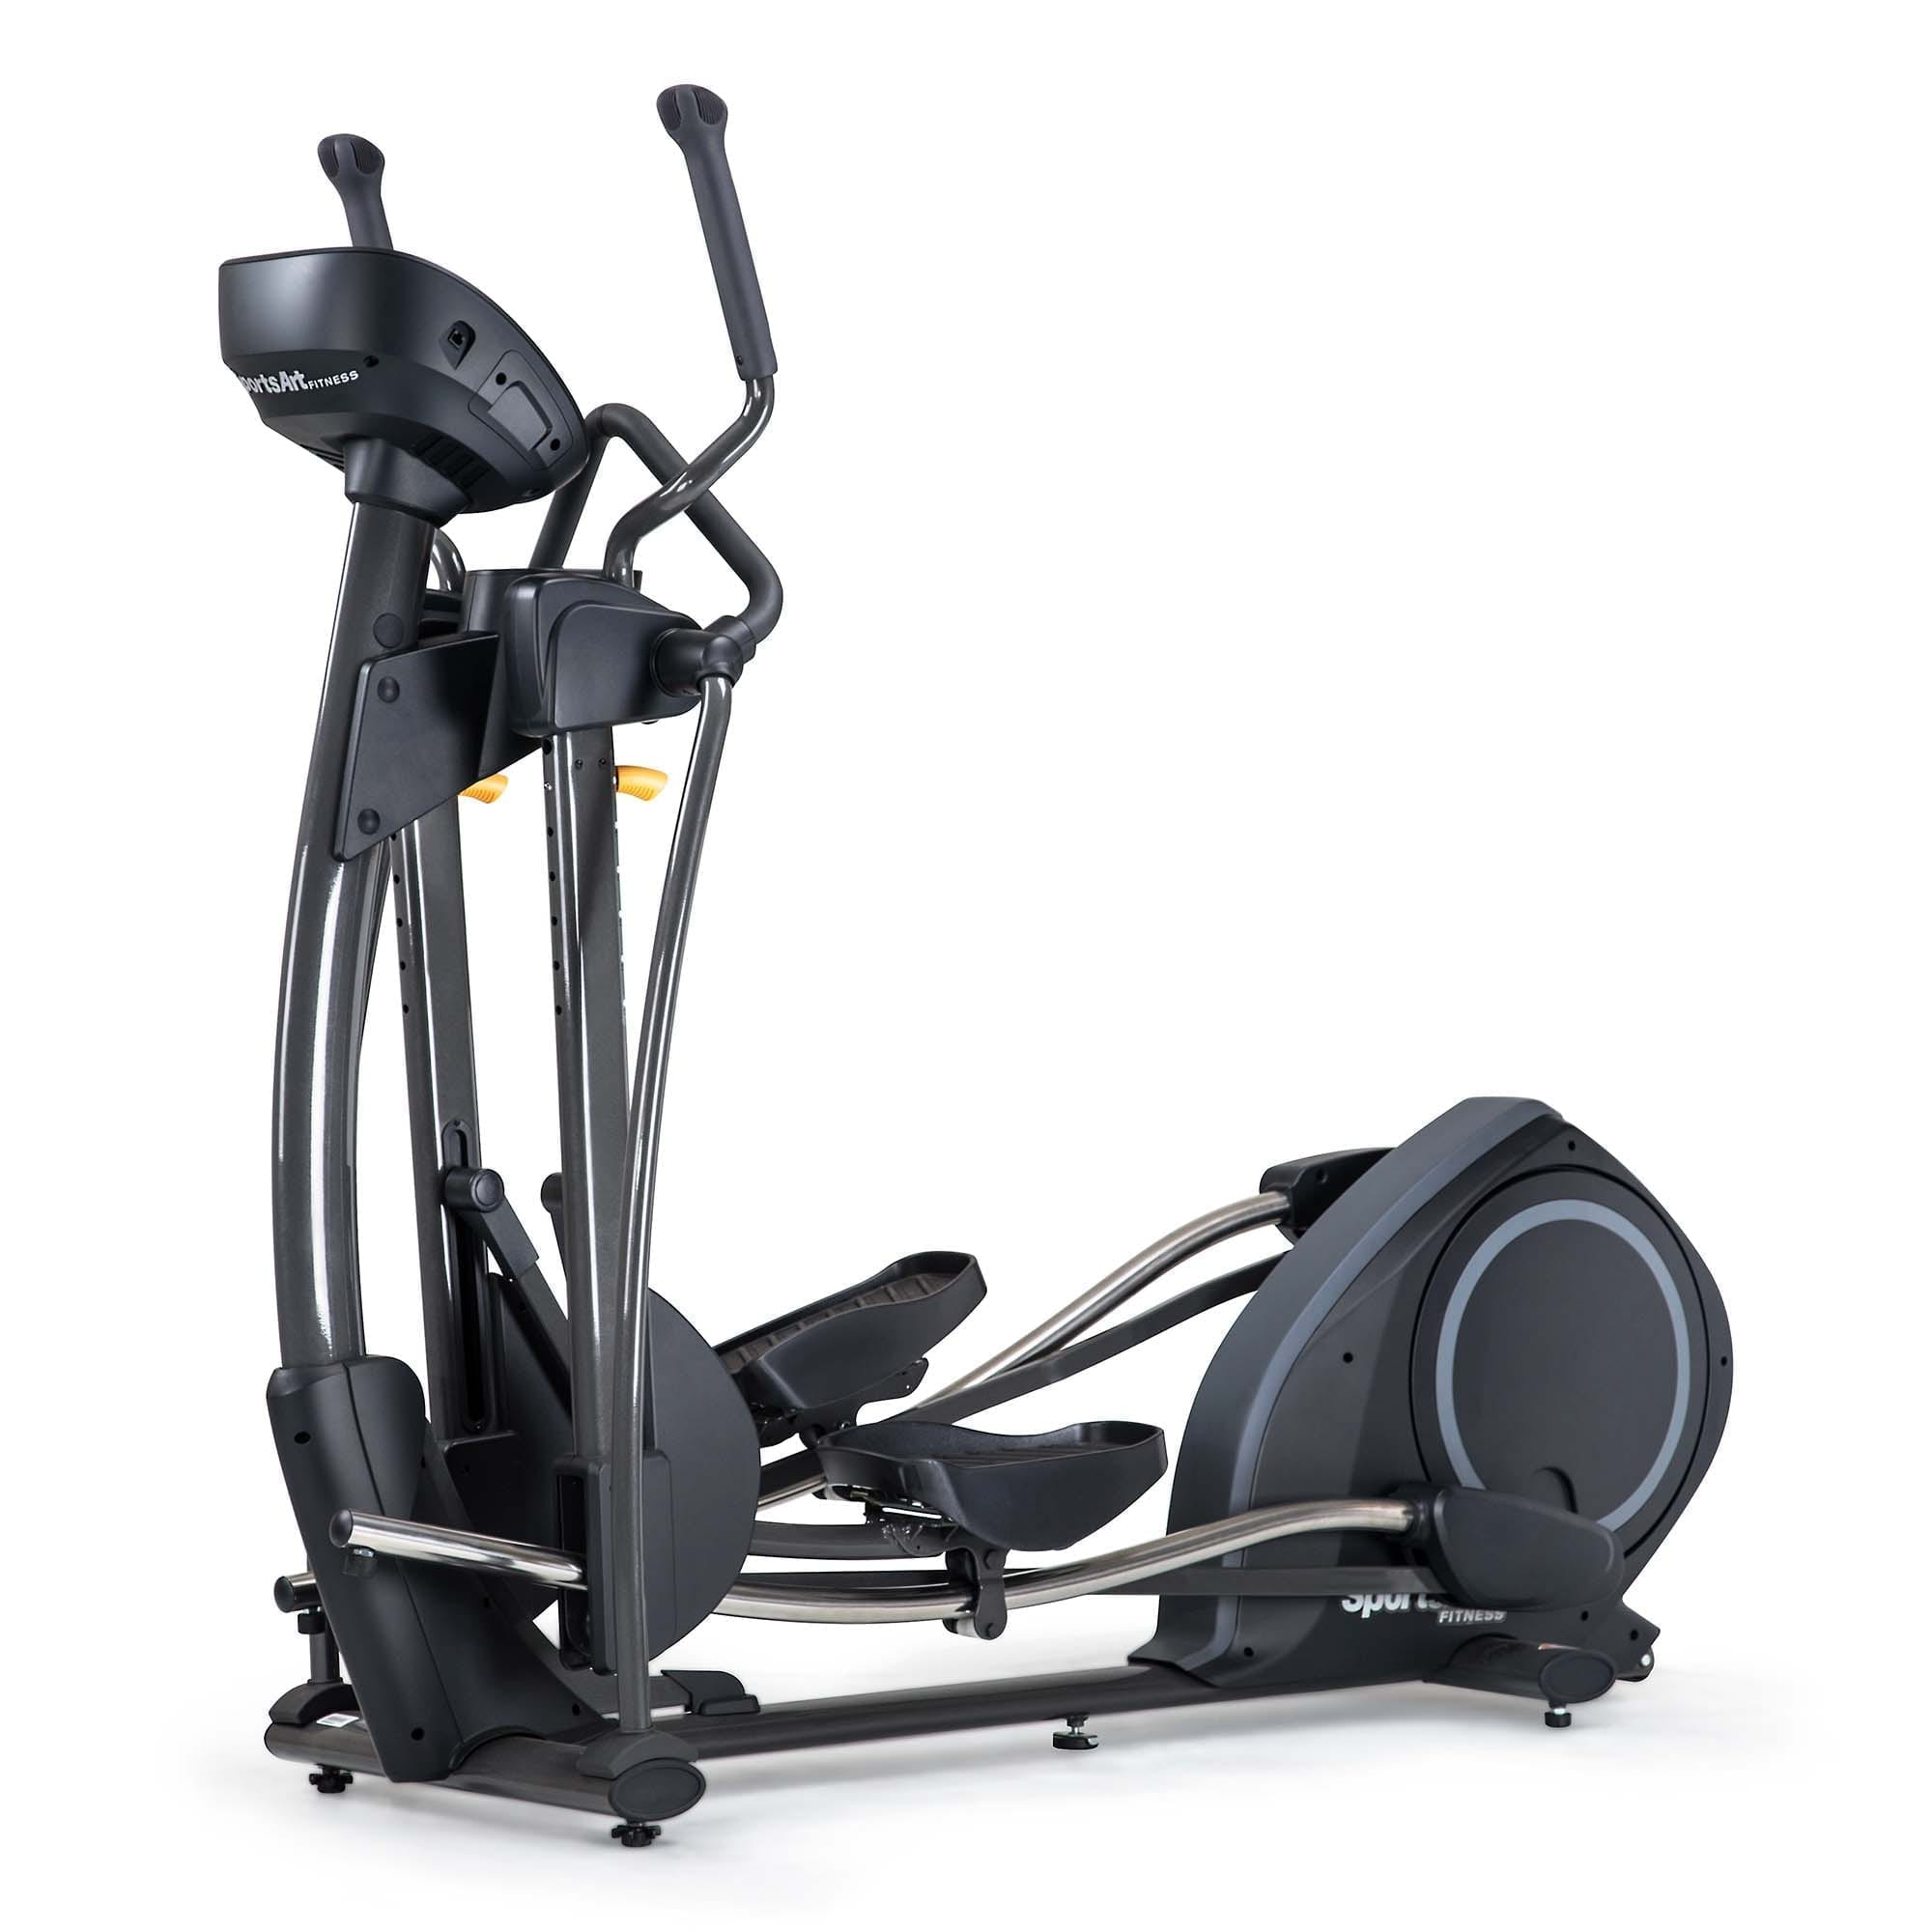 SportsArt E835 Elliptical